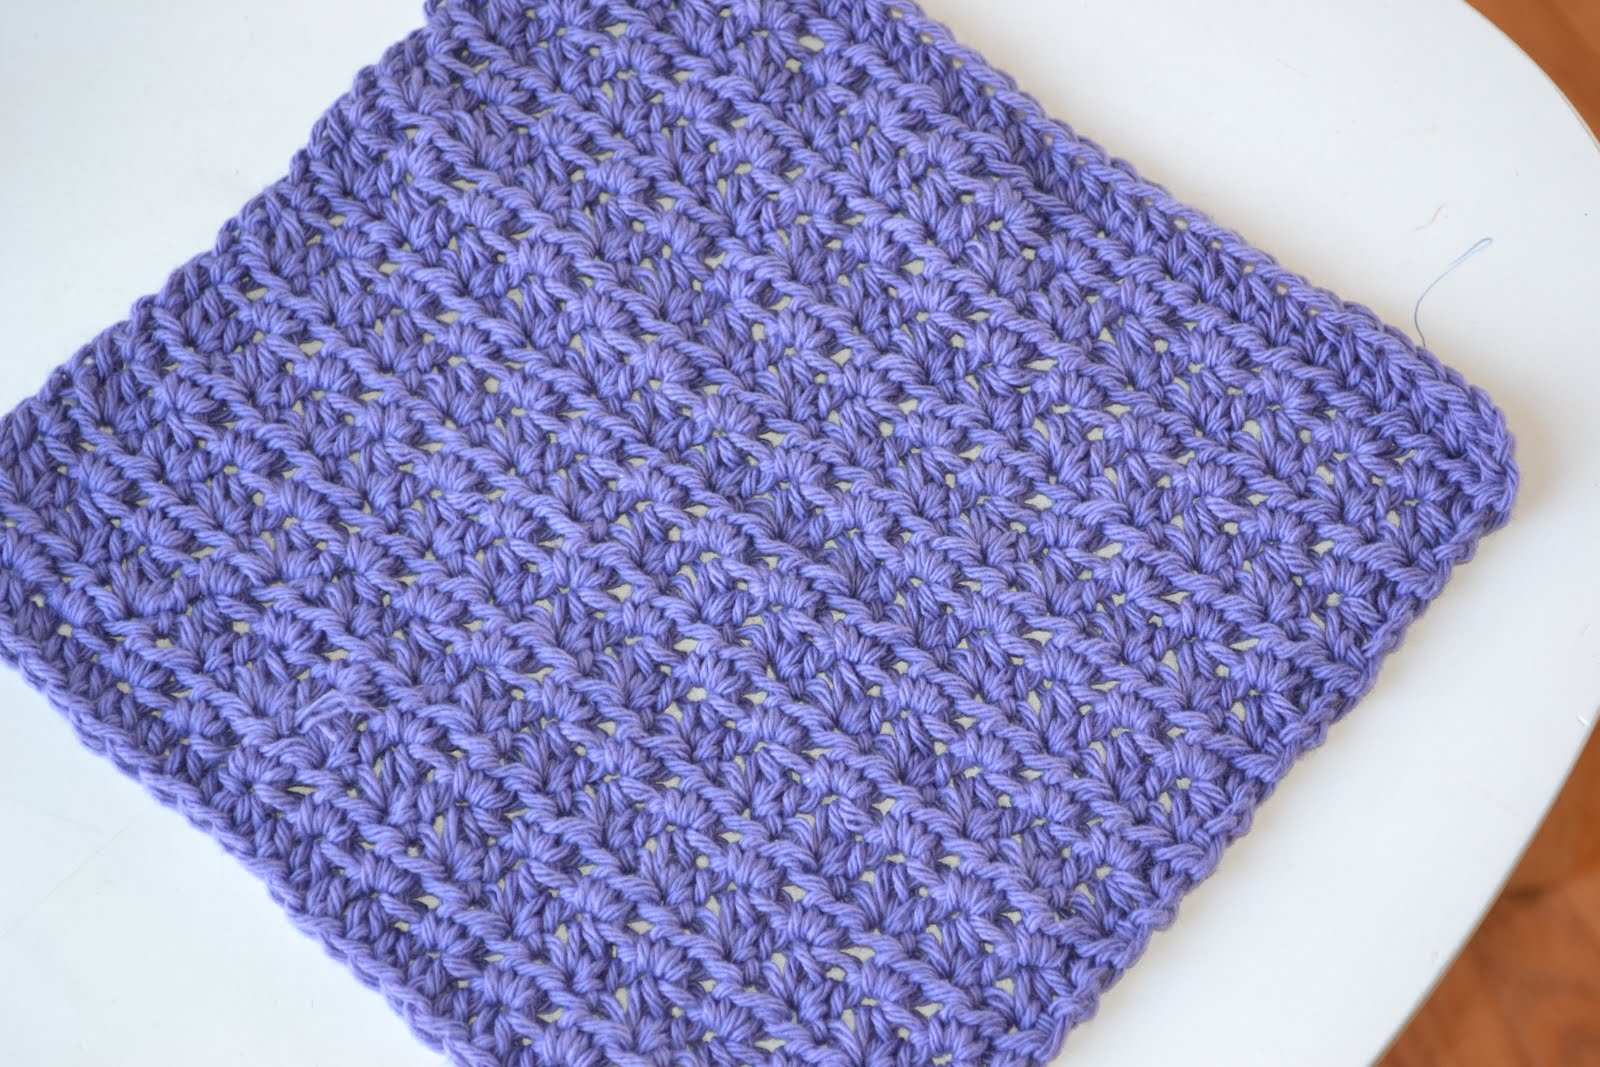 Free Crochet Pattern For Easy Dishcloth : Crochet in Color: Dishcloth Pattern